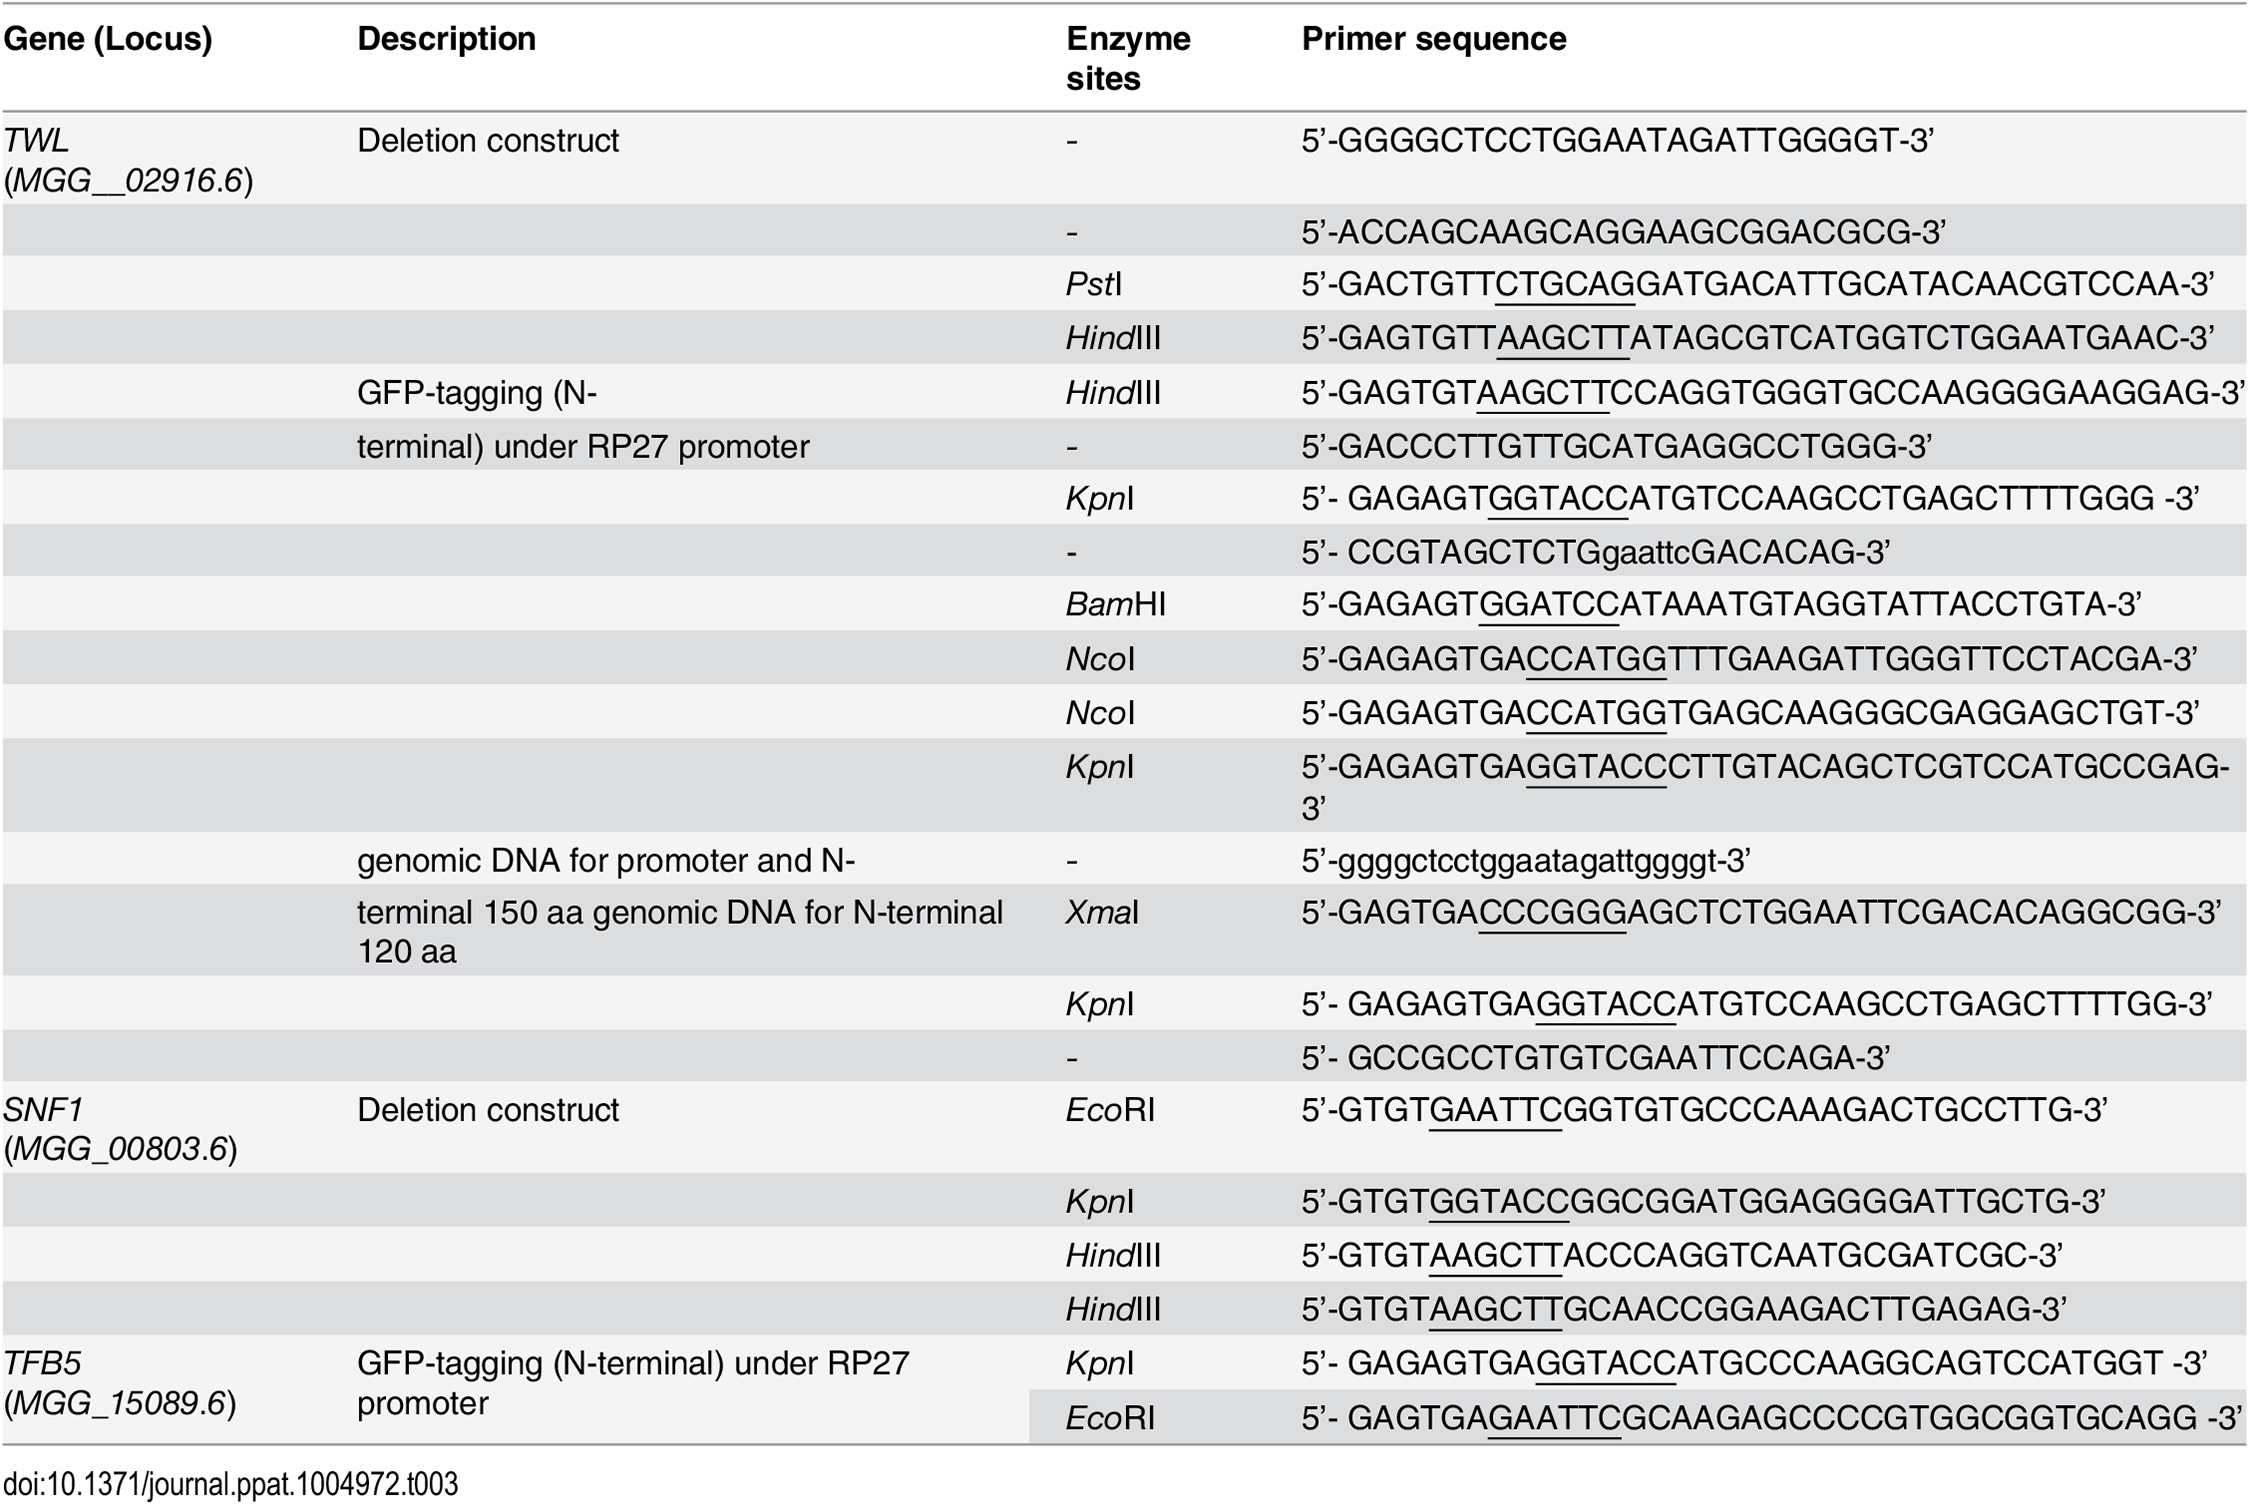 Oligonucleotide primers used for plasmid construction in this study.